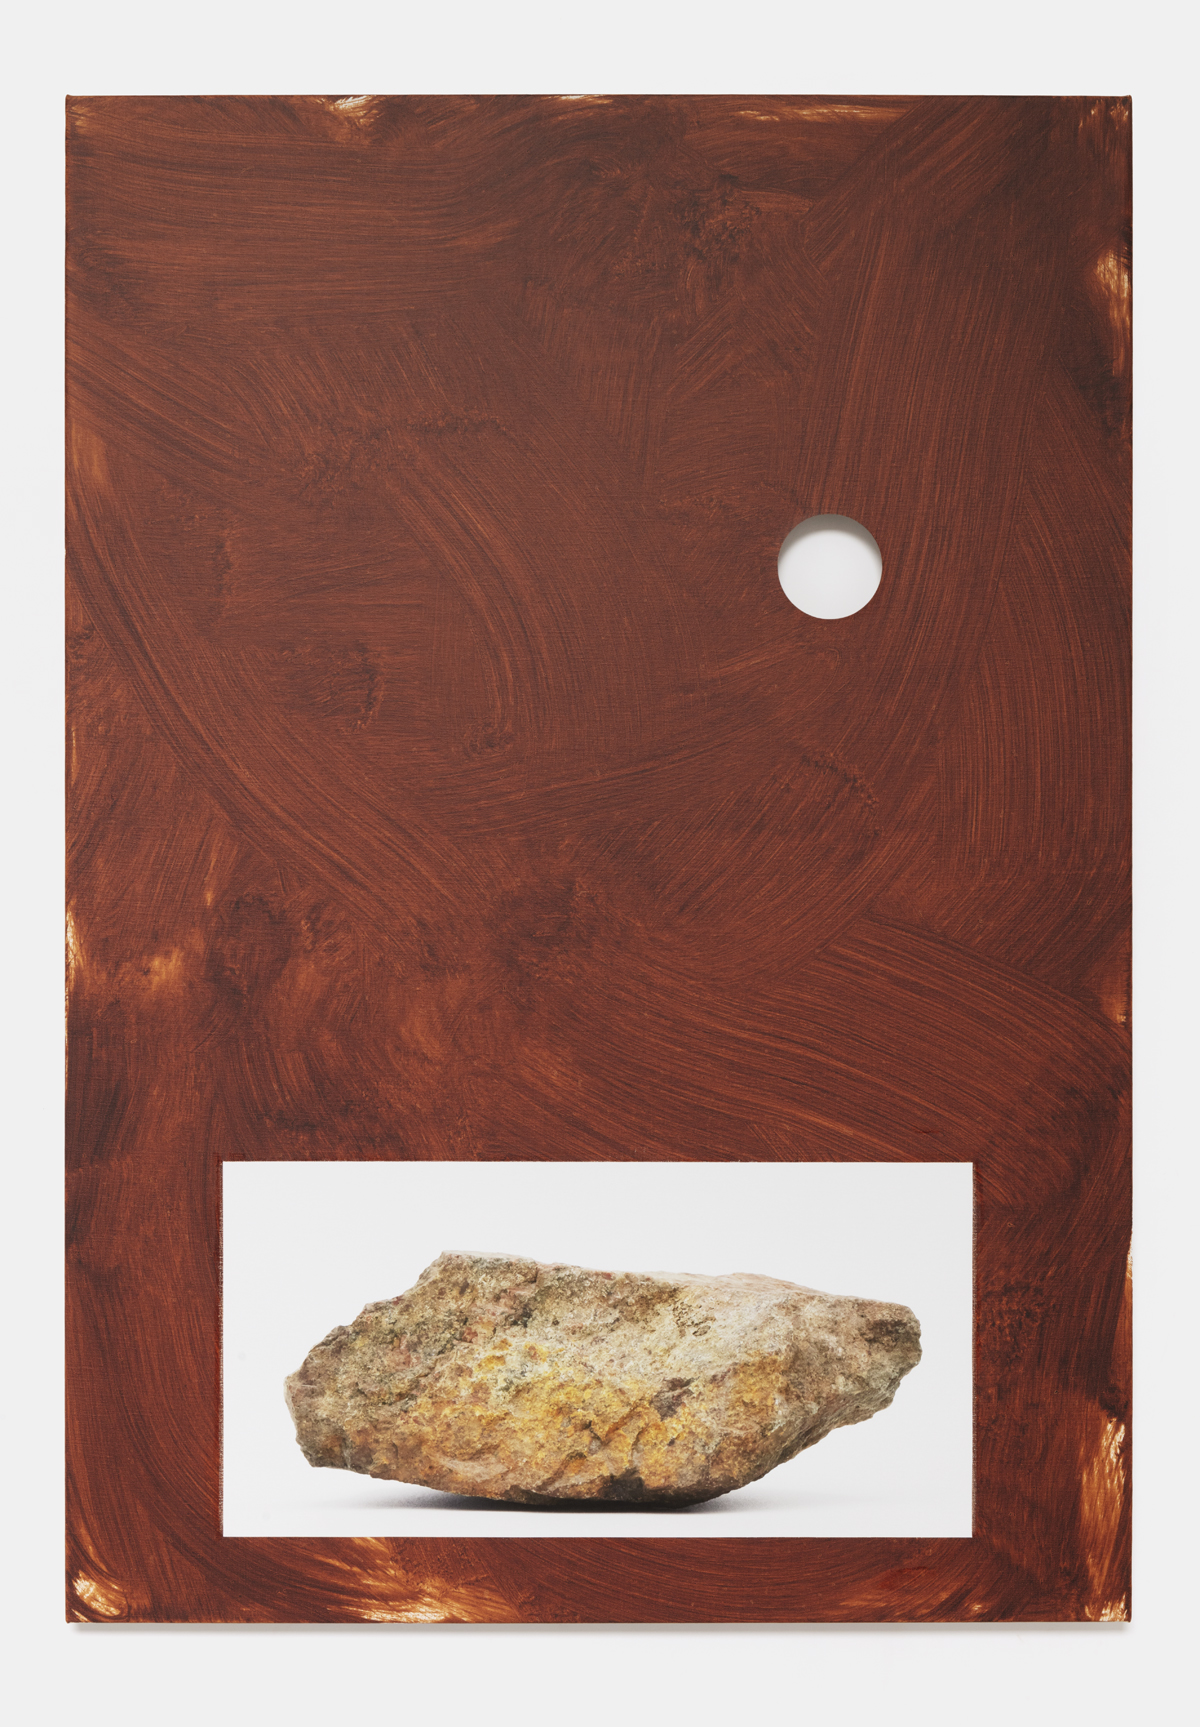 Berget/Sten (The Montain/Stone), 2020 oil and photography on canvas, 122 x 85 cm